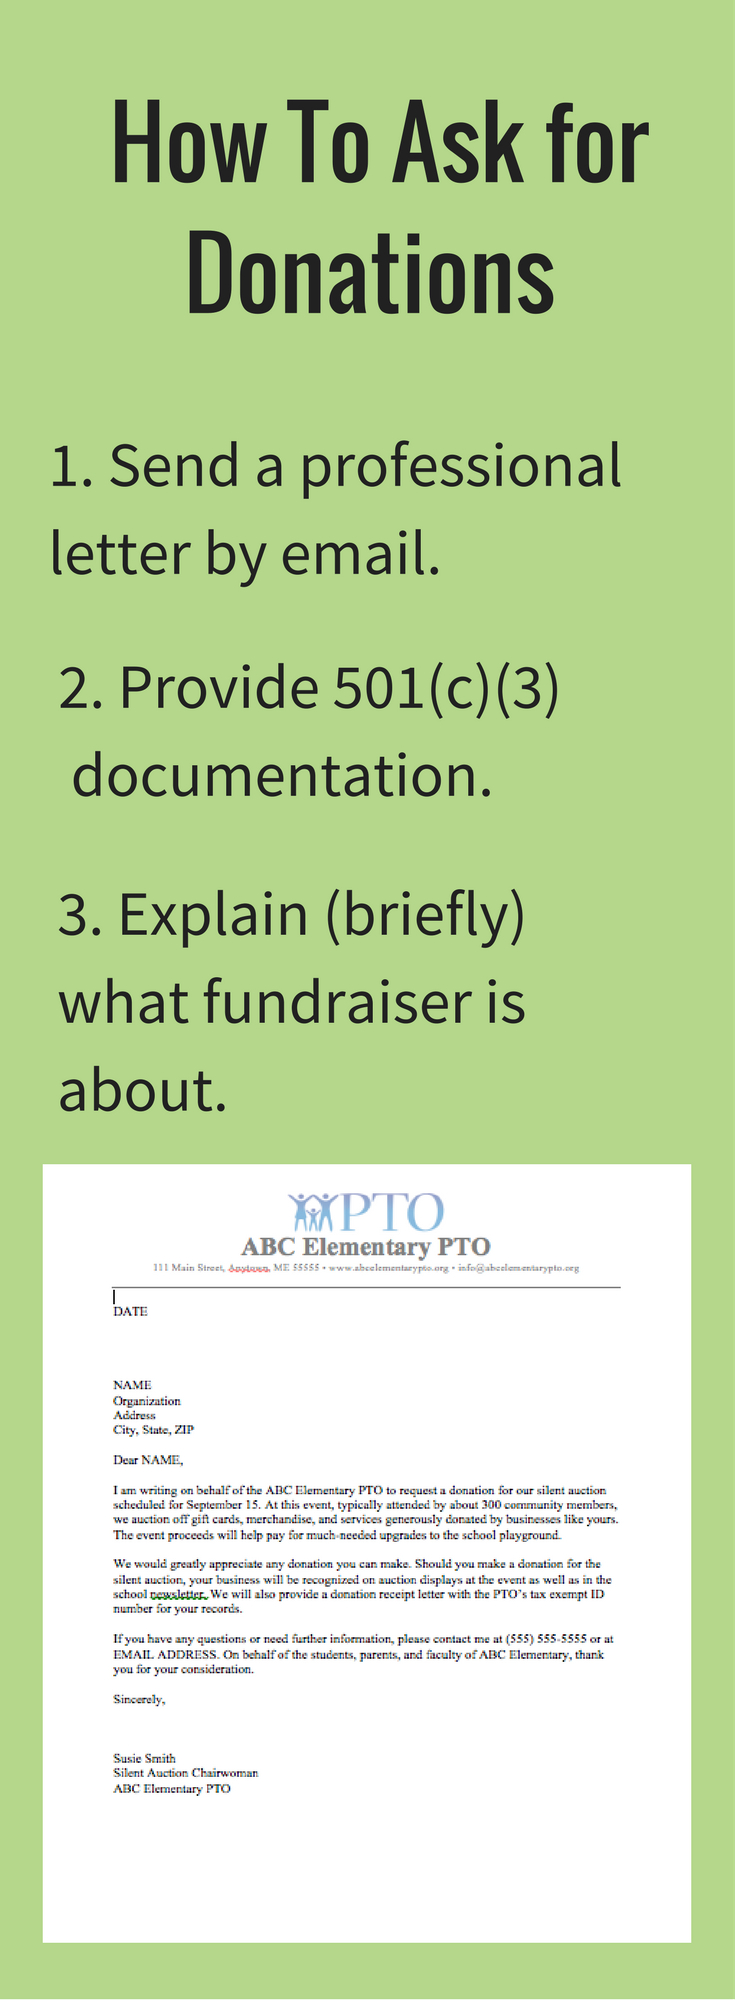 Silent Auction Donation Request Letter Template - Download Our Free Donation Letter Request Template